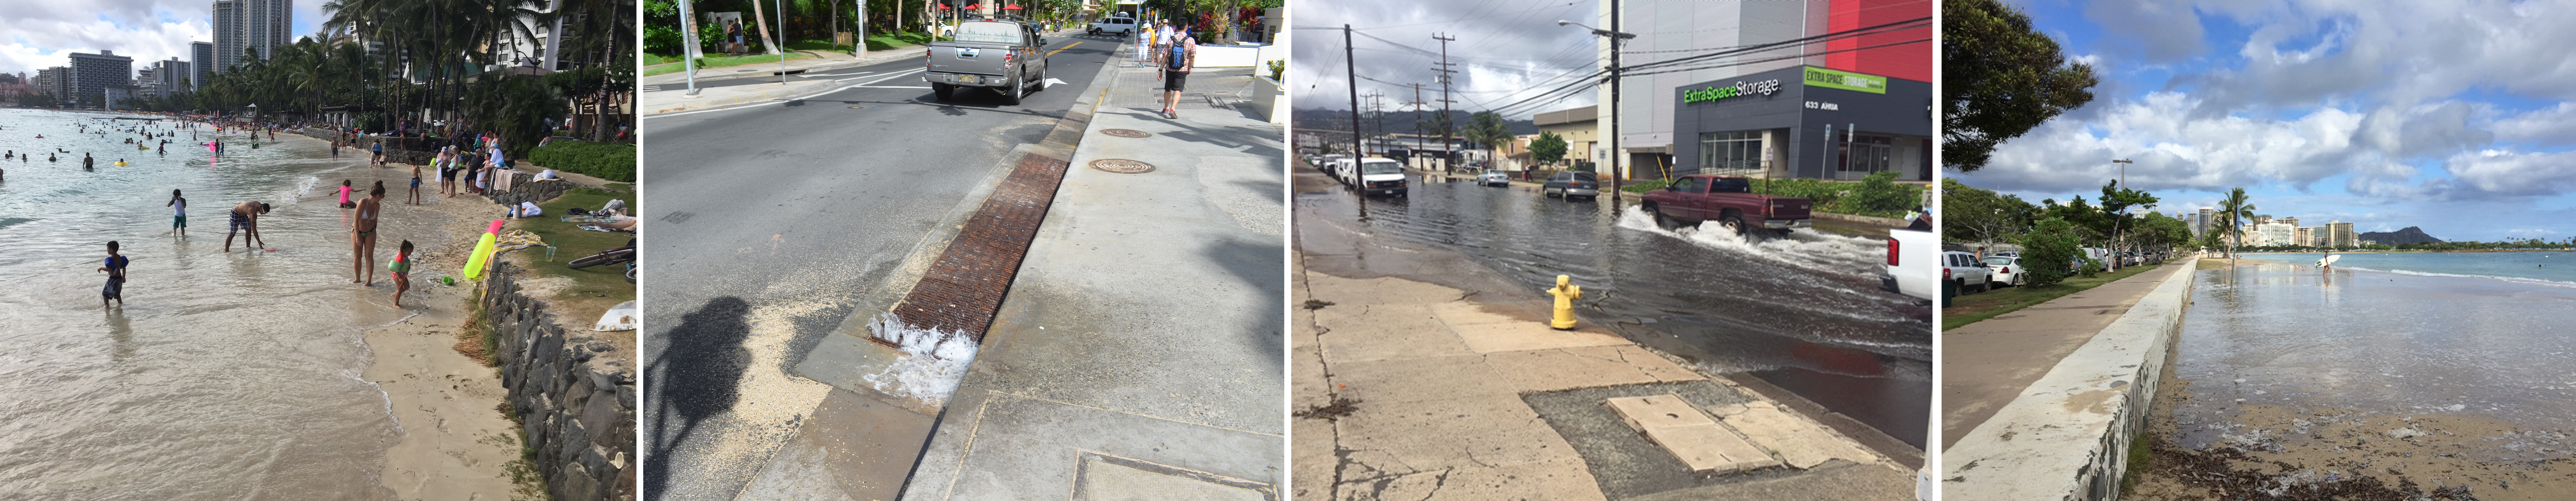 King tides expected to rule over coastal flooding surf news network courtesy sea grant hawaii and pacific islands king tides project nvjuhfo Choice Image